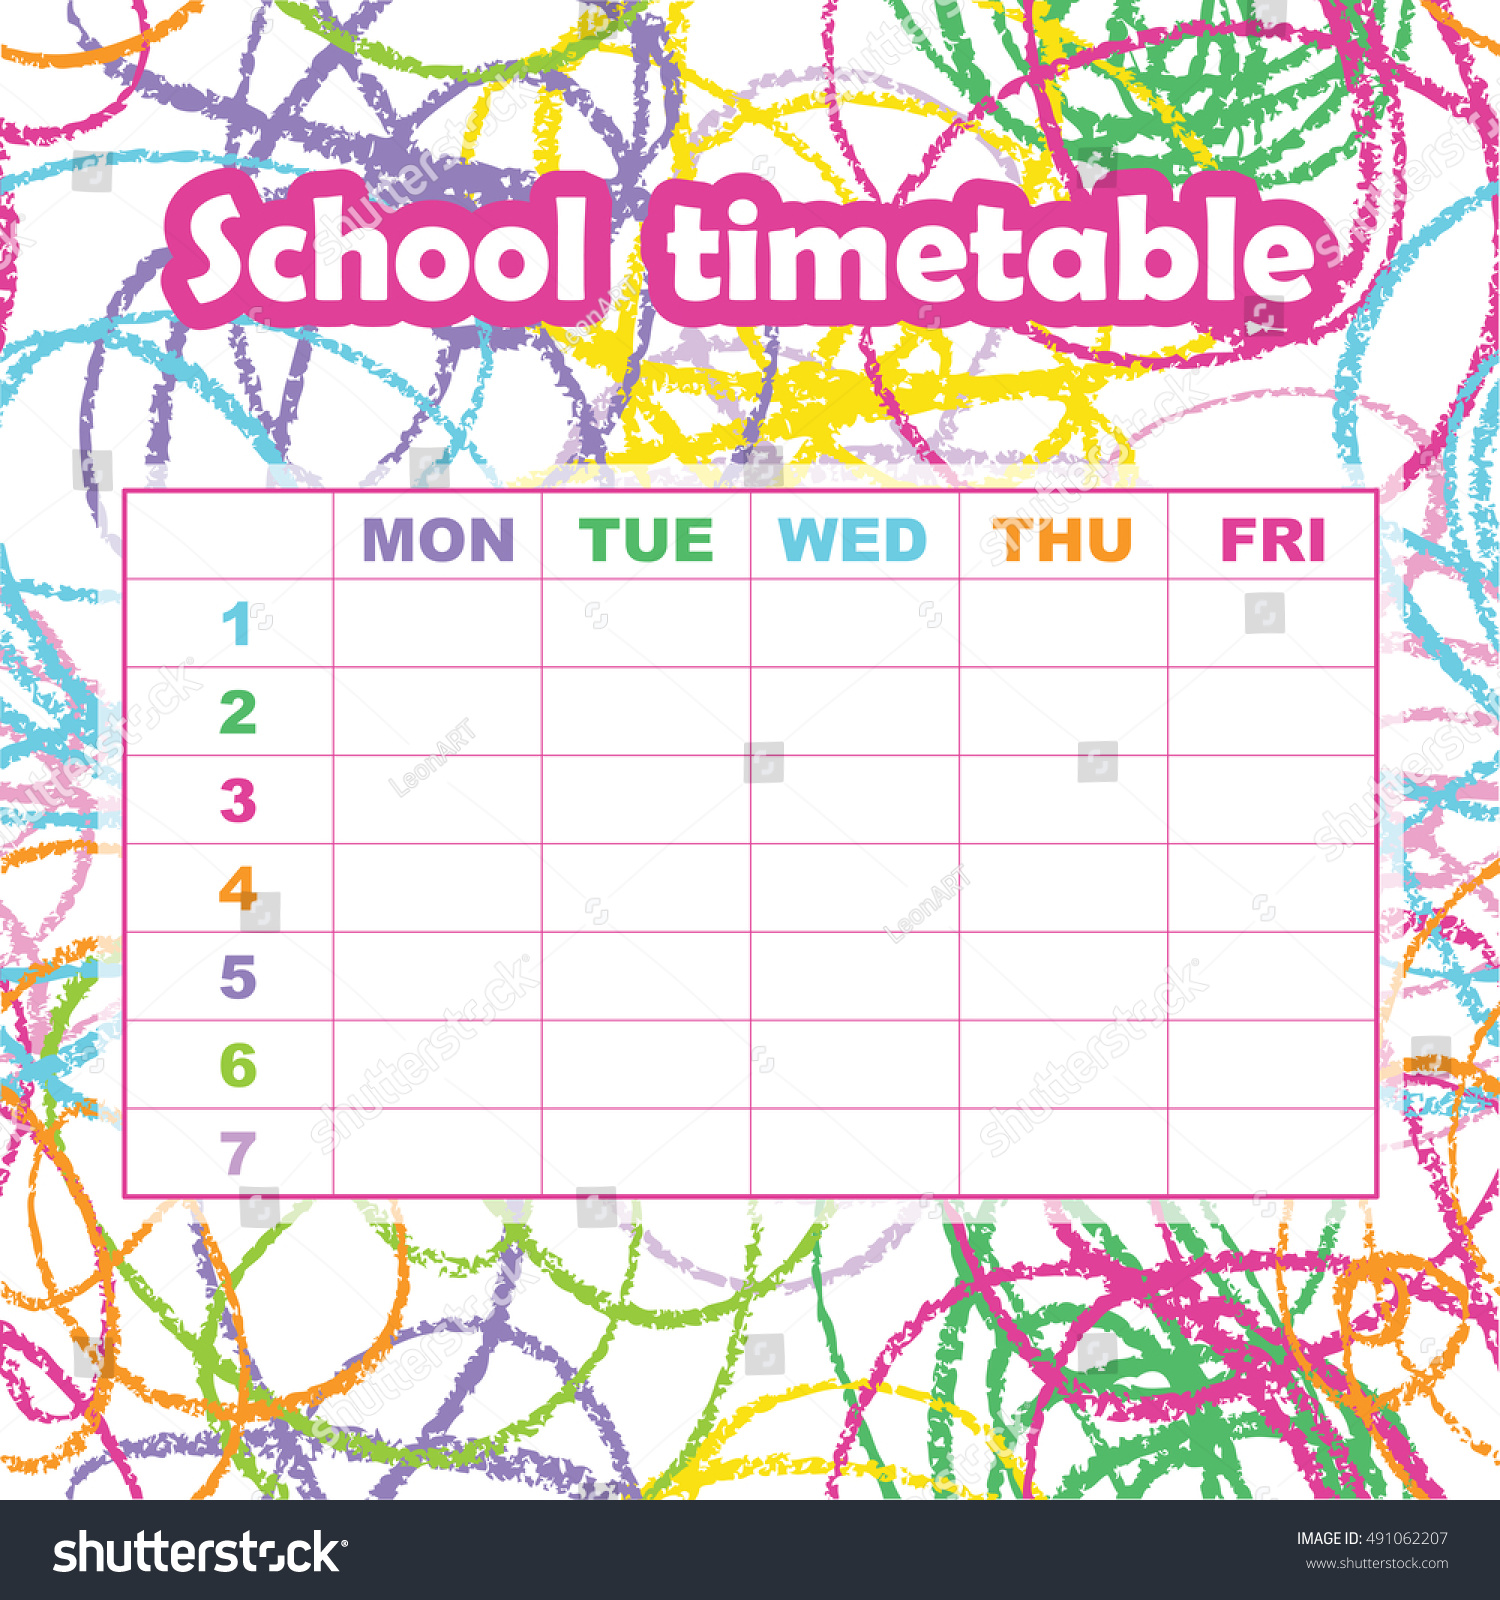 school timetable template for students and pupils abstract school timetable template for students and pupils abstract scribble background colorful design element